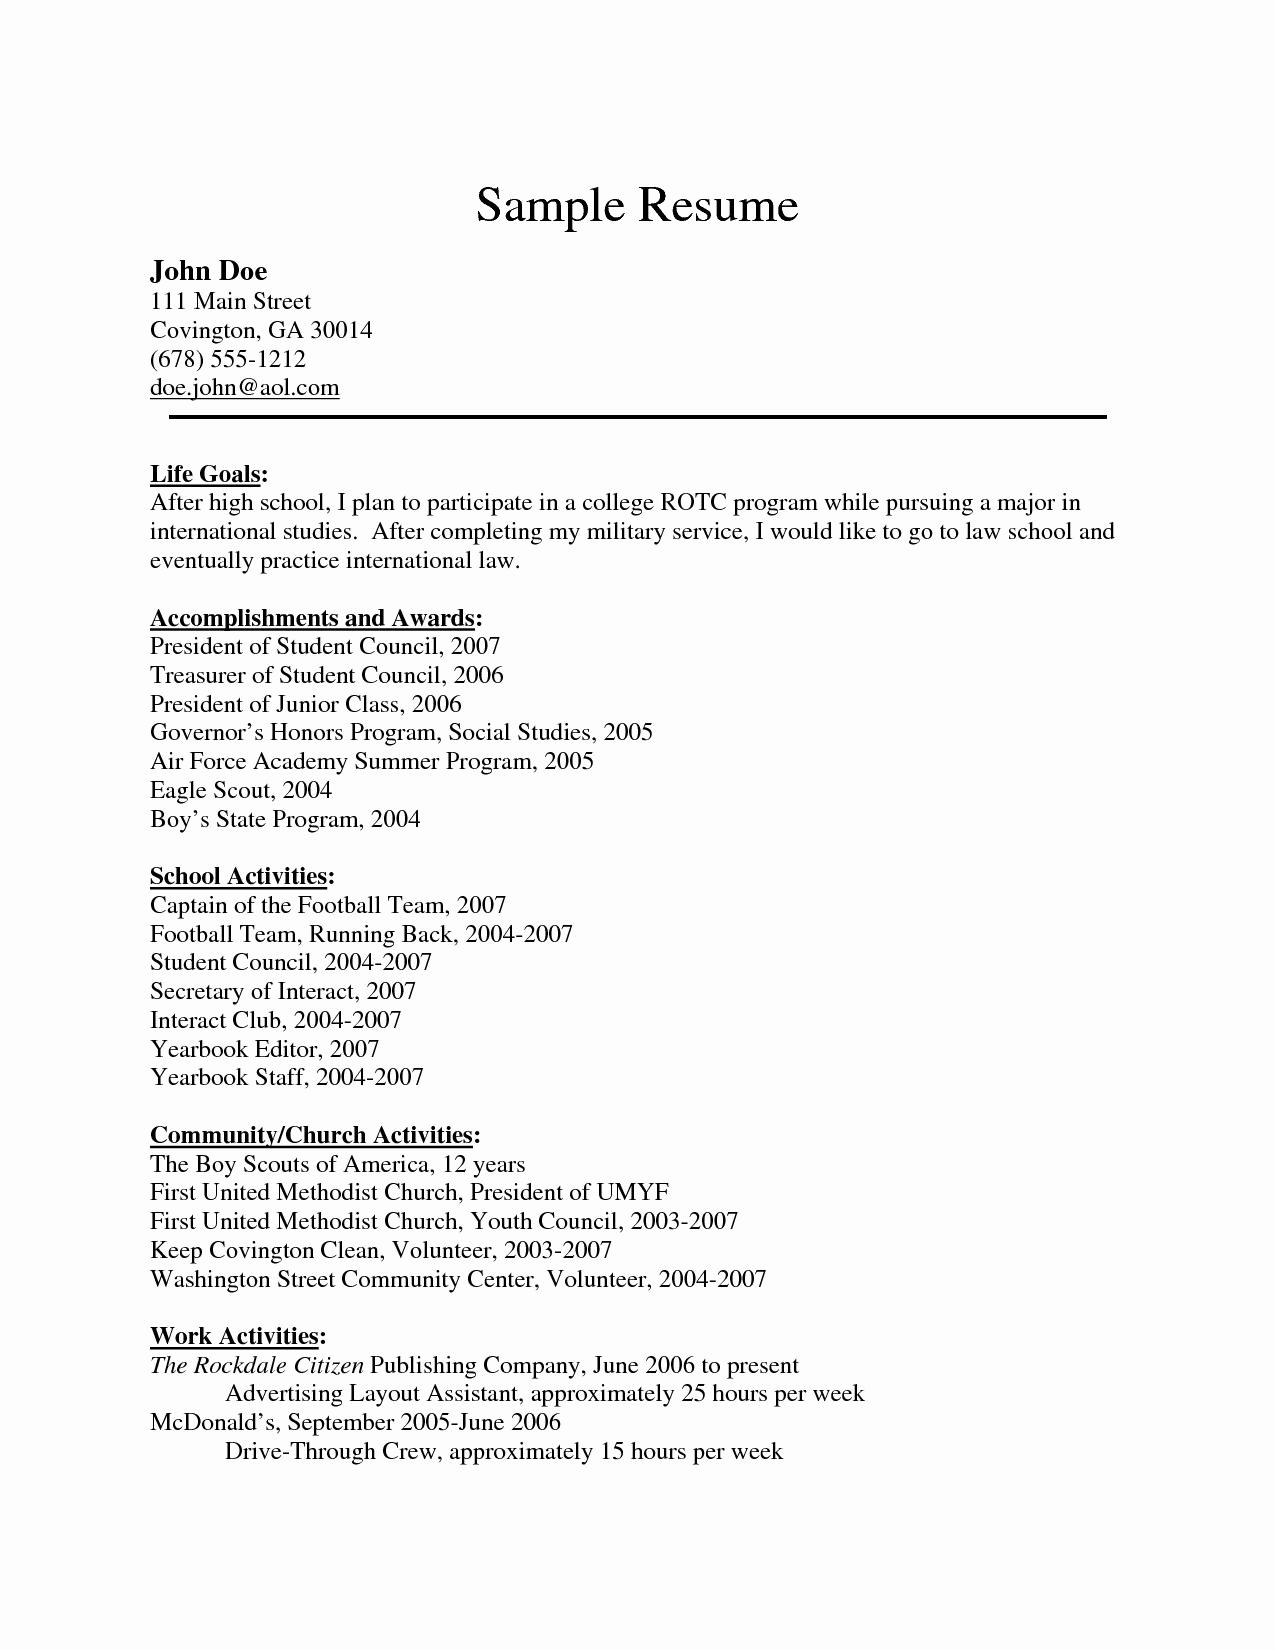 11 Cool Mcdonalds Crew Member Job Description For Resume for Ideas